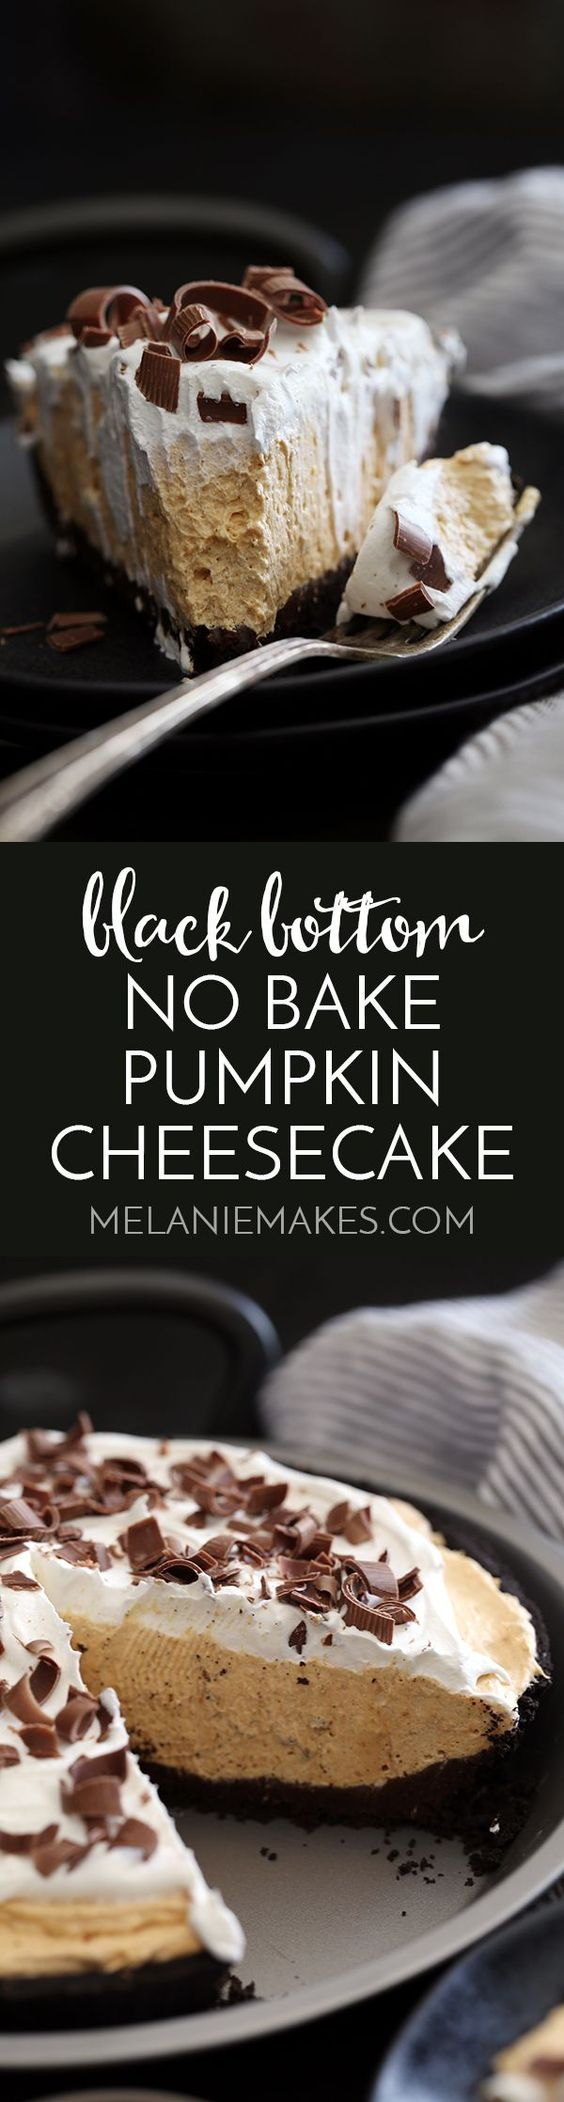 No bake pumpkin cheesecake, Pumpkin cheesecake and Oreo crust on ...